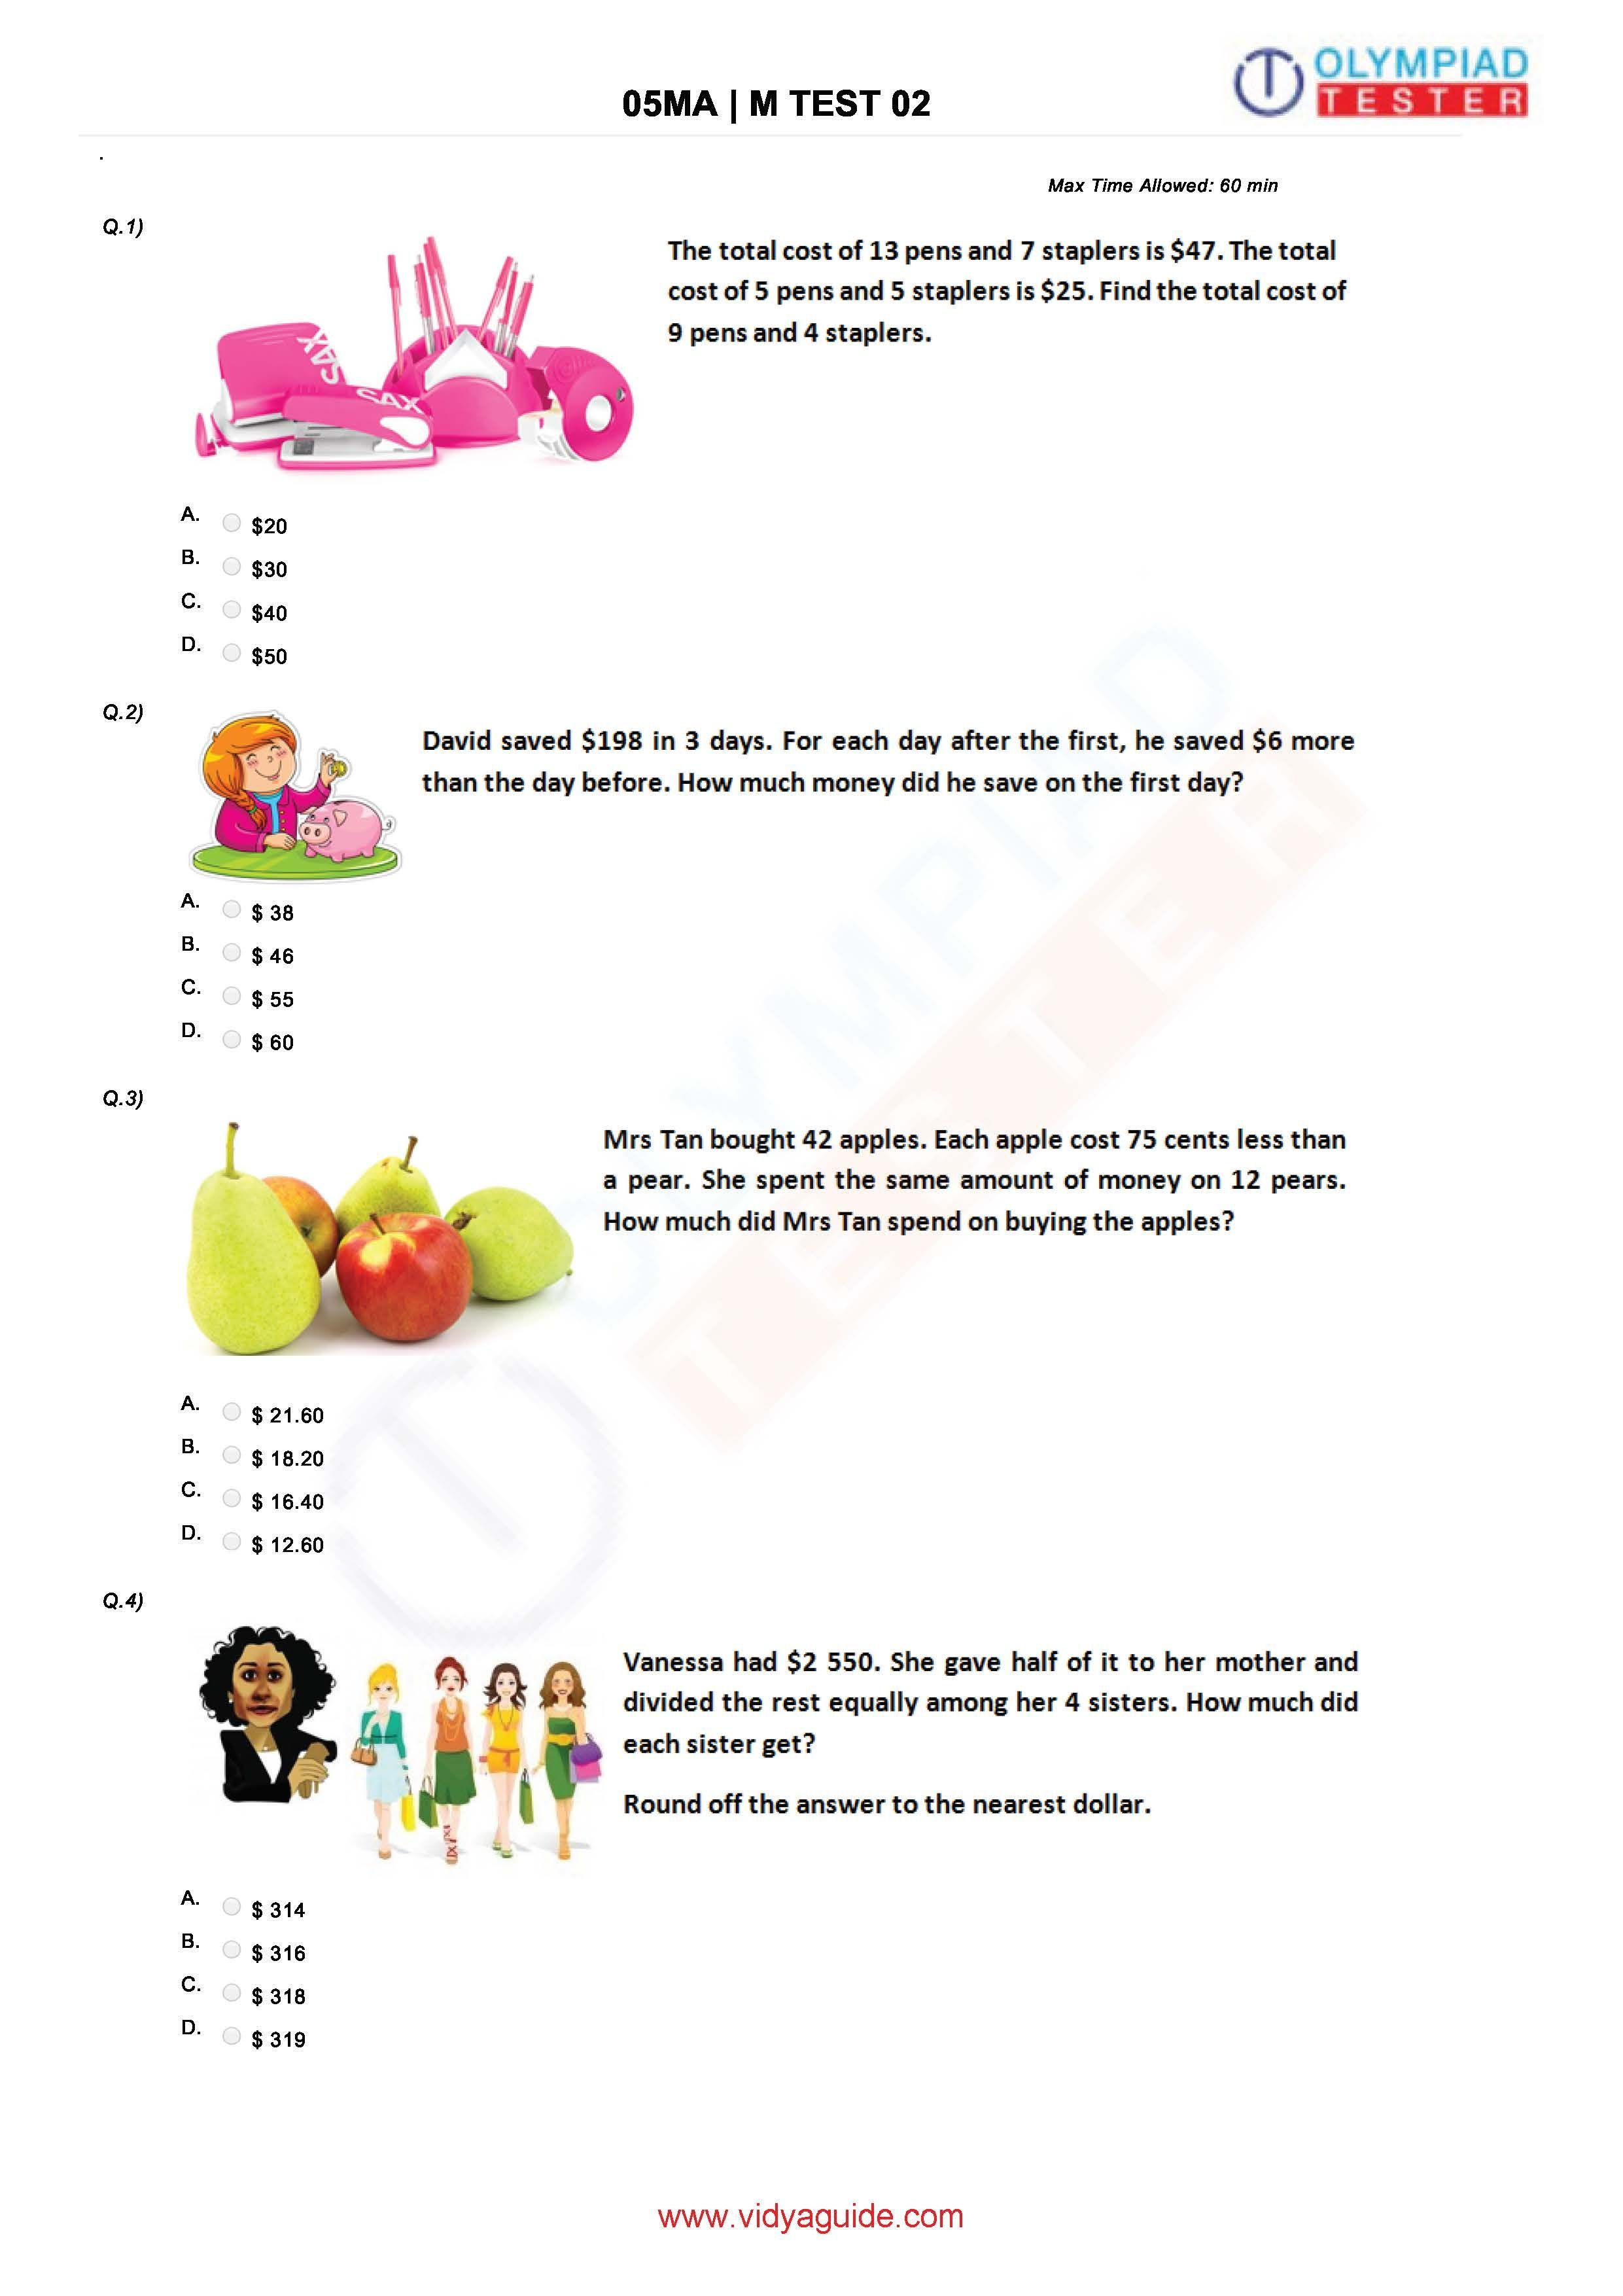 Download Free Grade 5 Maths Printable Worksheets Or Take These Tests Online At Vidyaguide Math Olympiad 5th Grade Math Grade 5 Math Worksheets